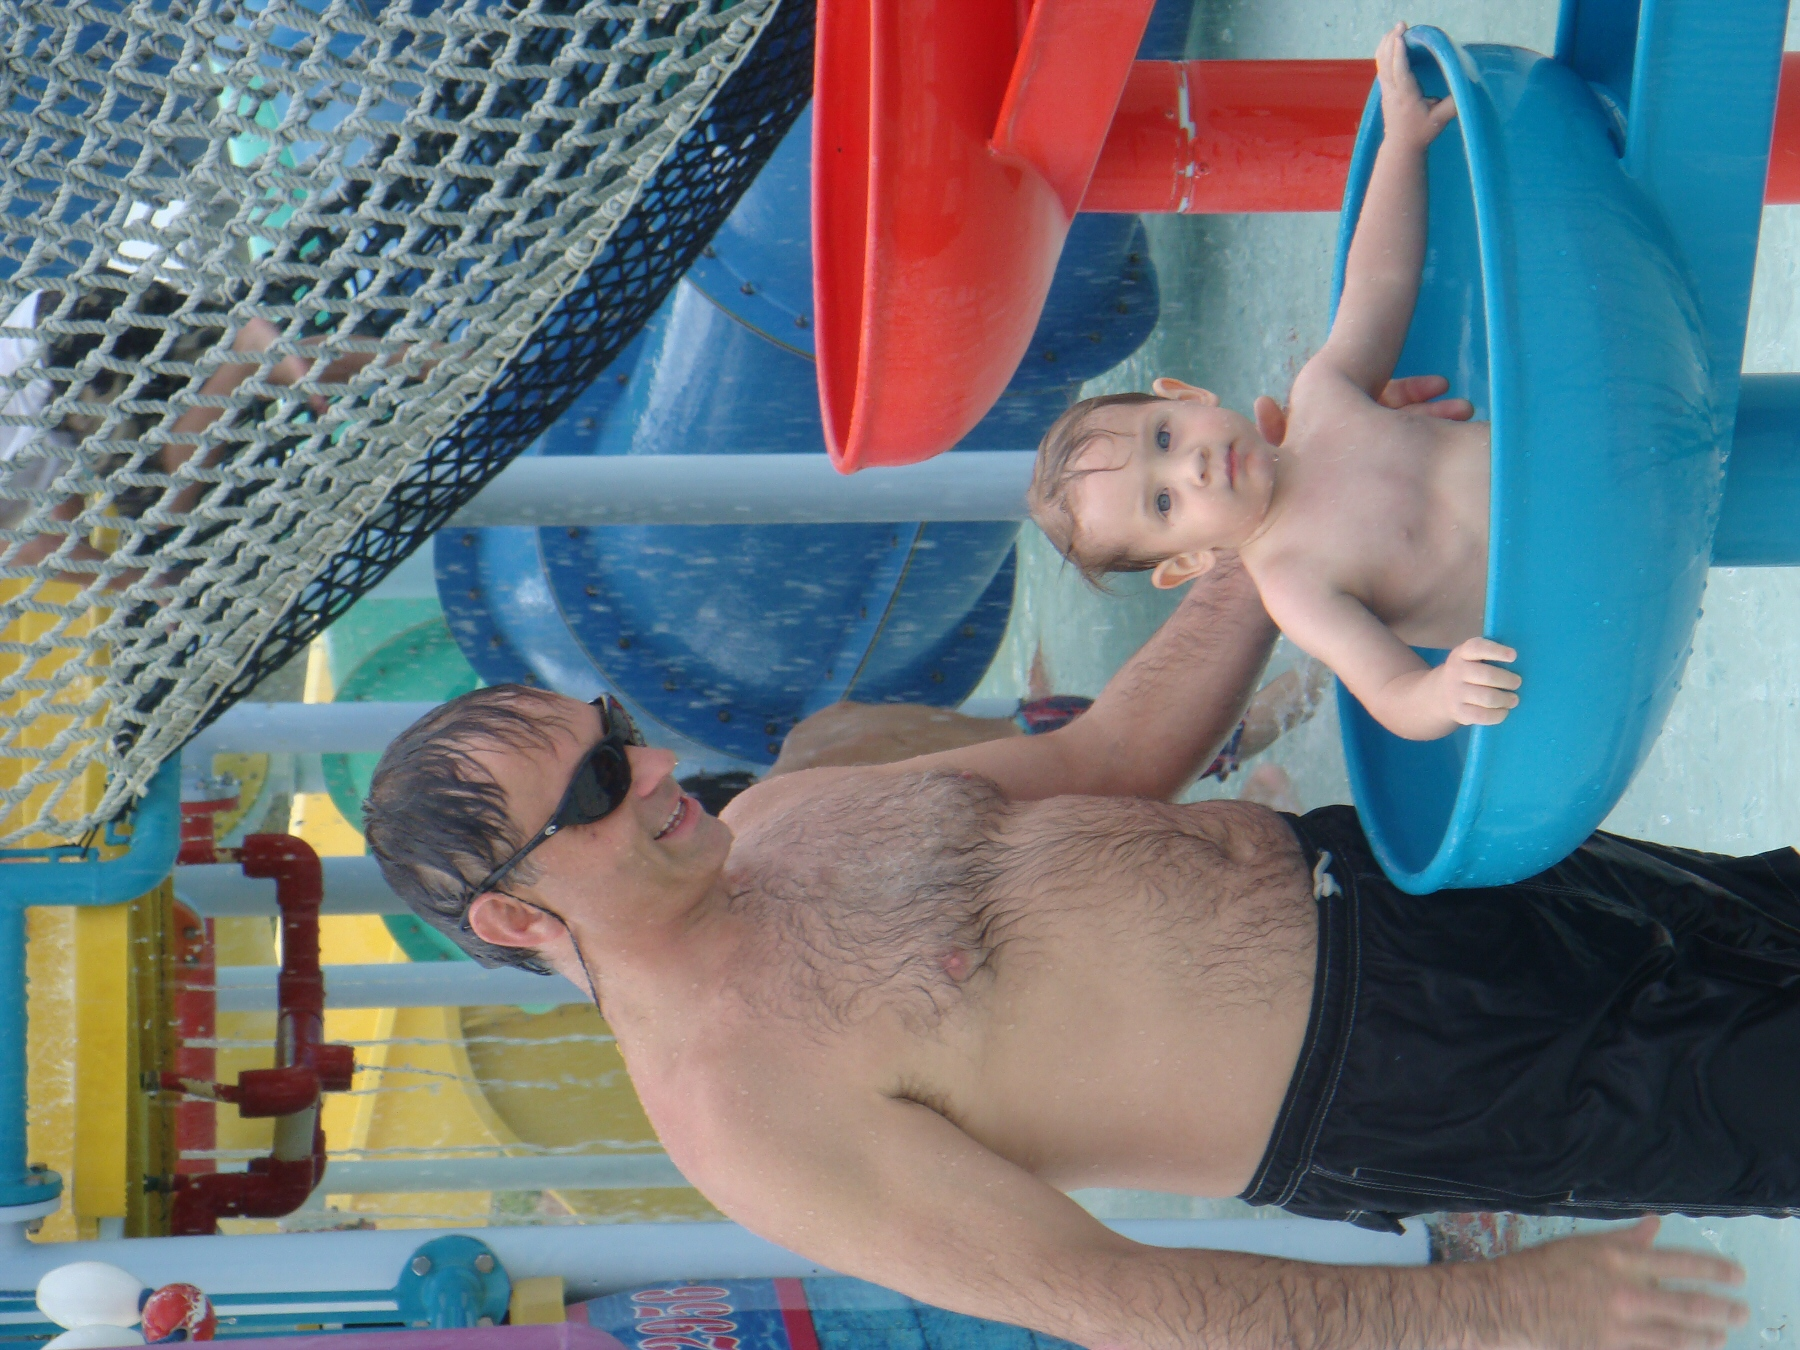 man and child at water park